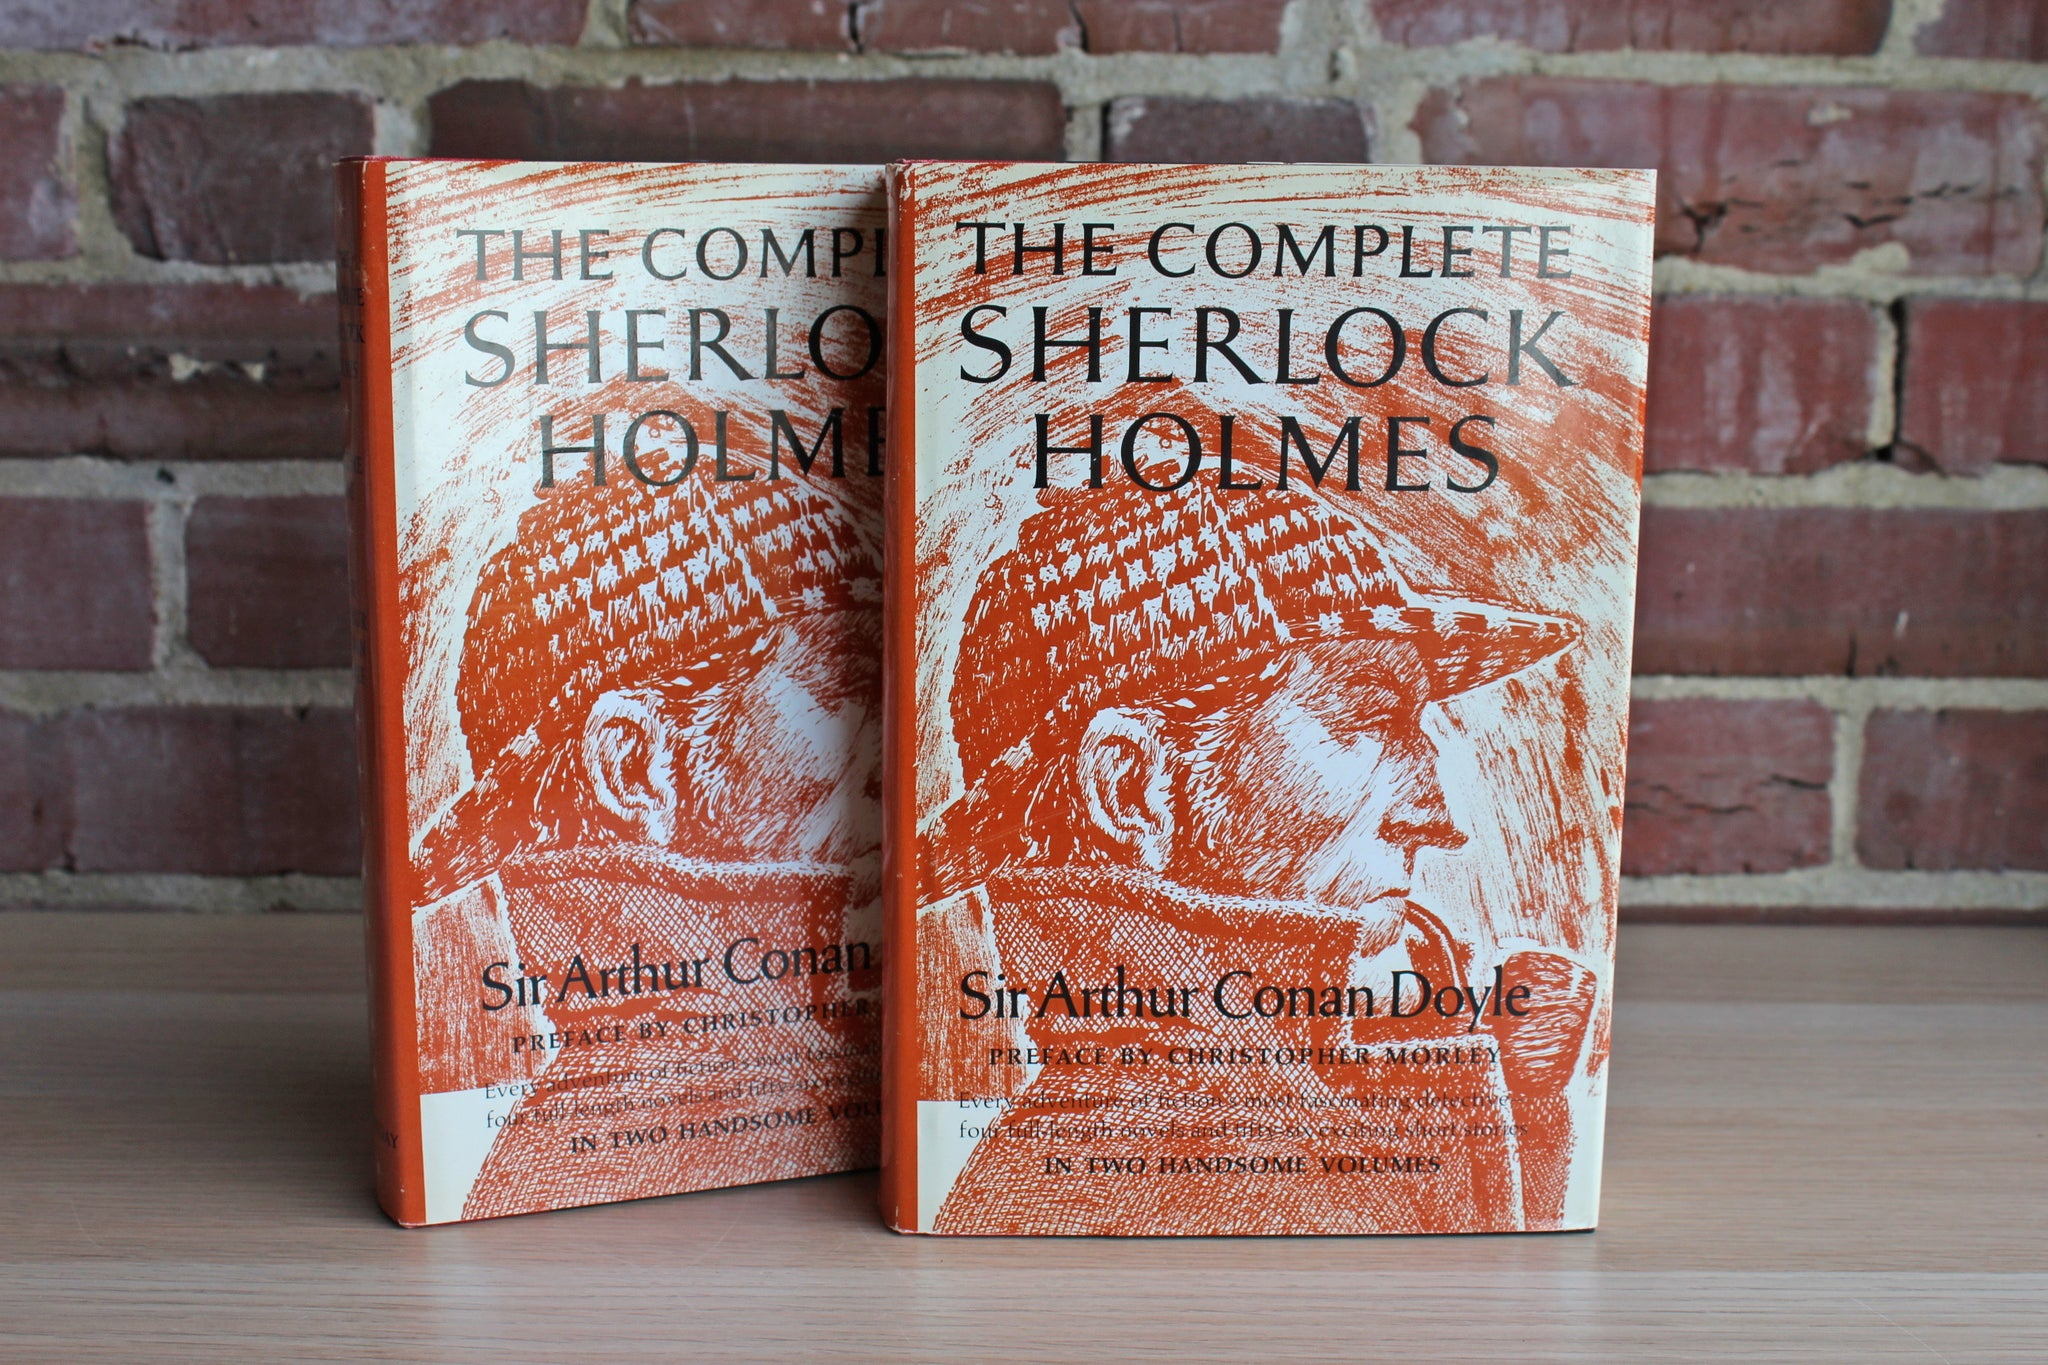 The Complete Sherlock Holmes in Two Handsome Volumes by Sir Arthur Conan Doyle